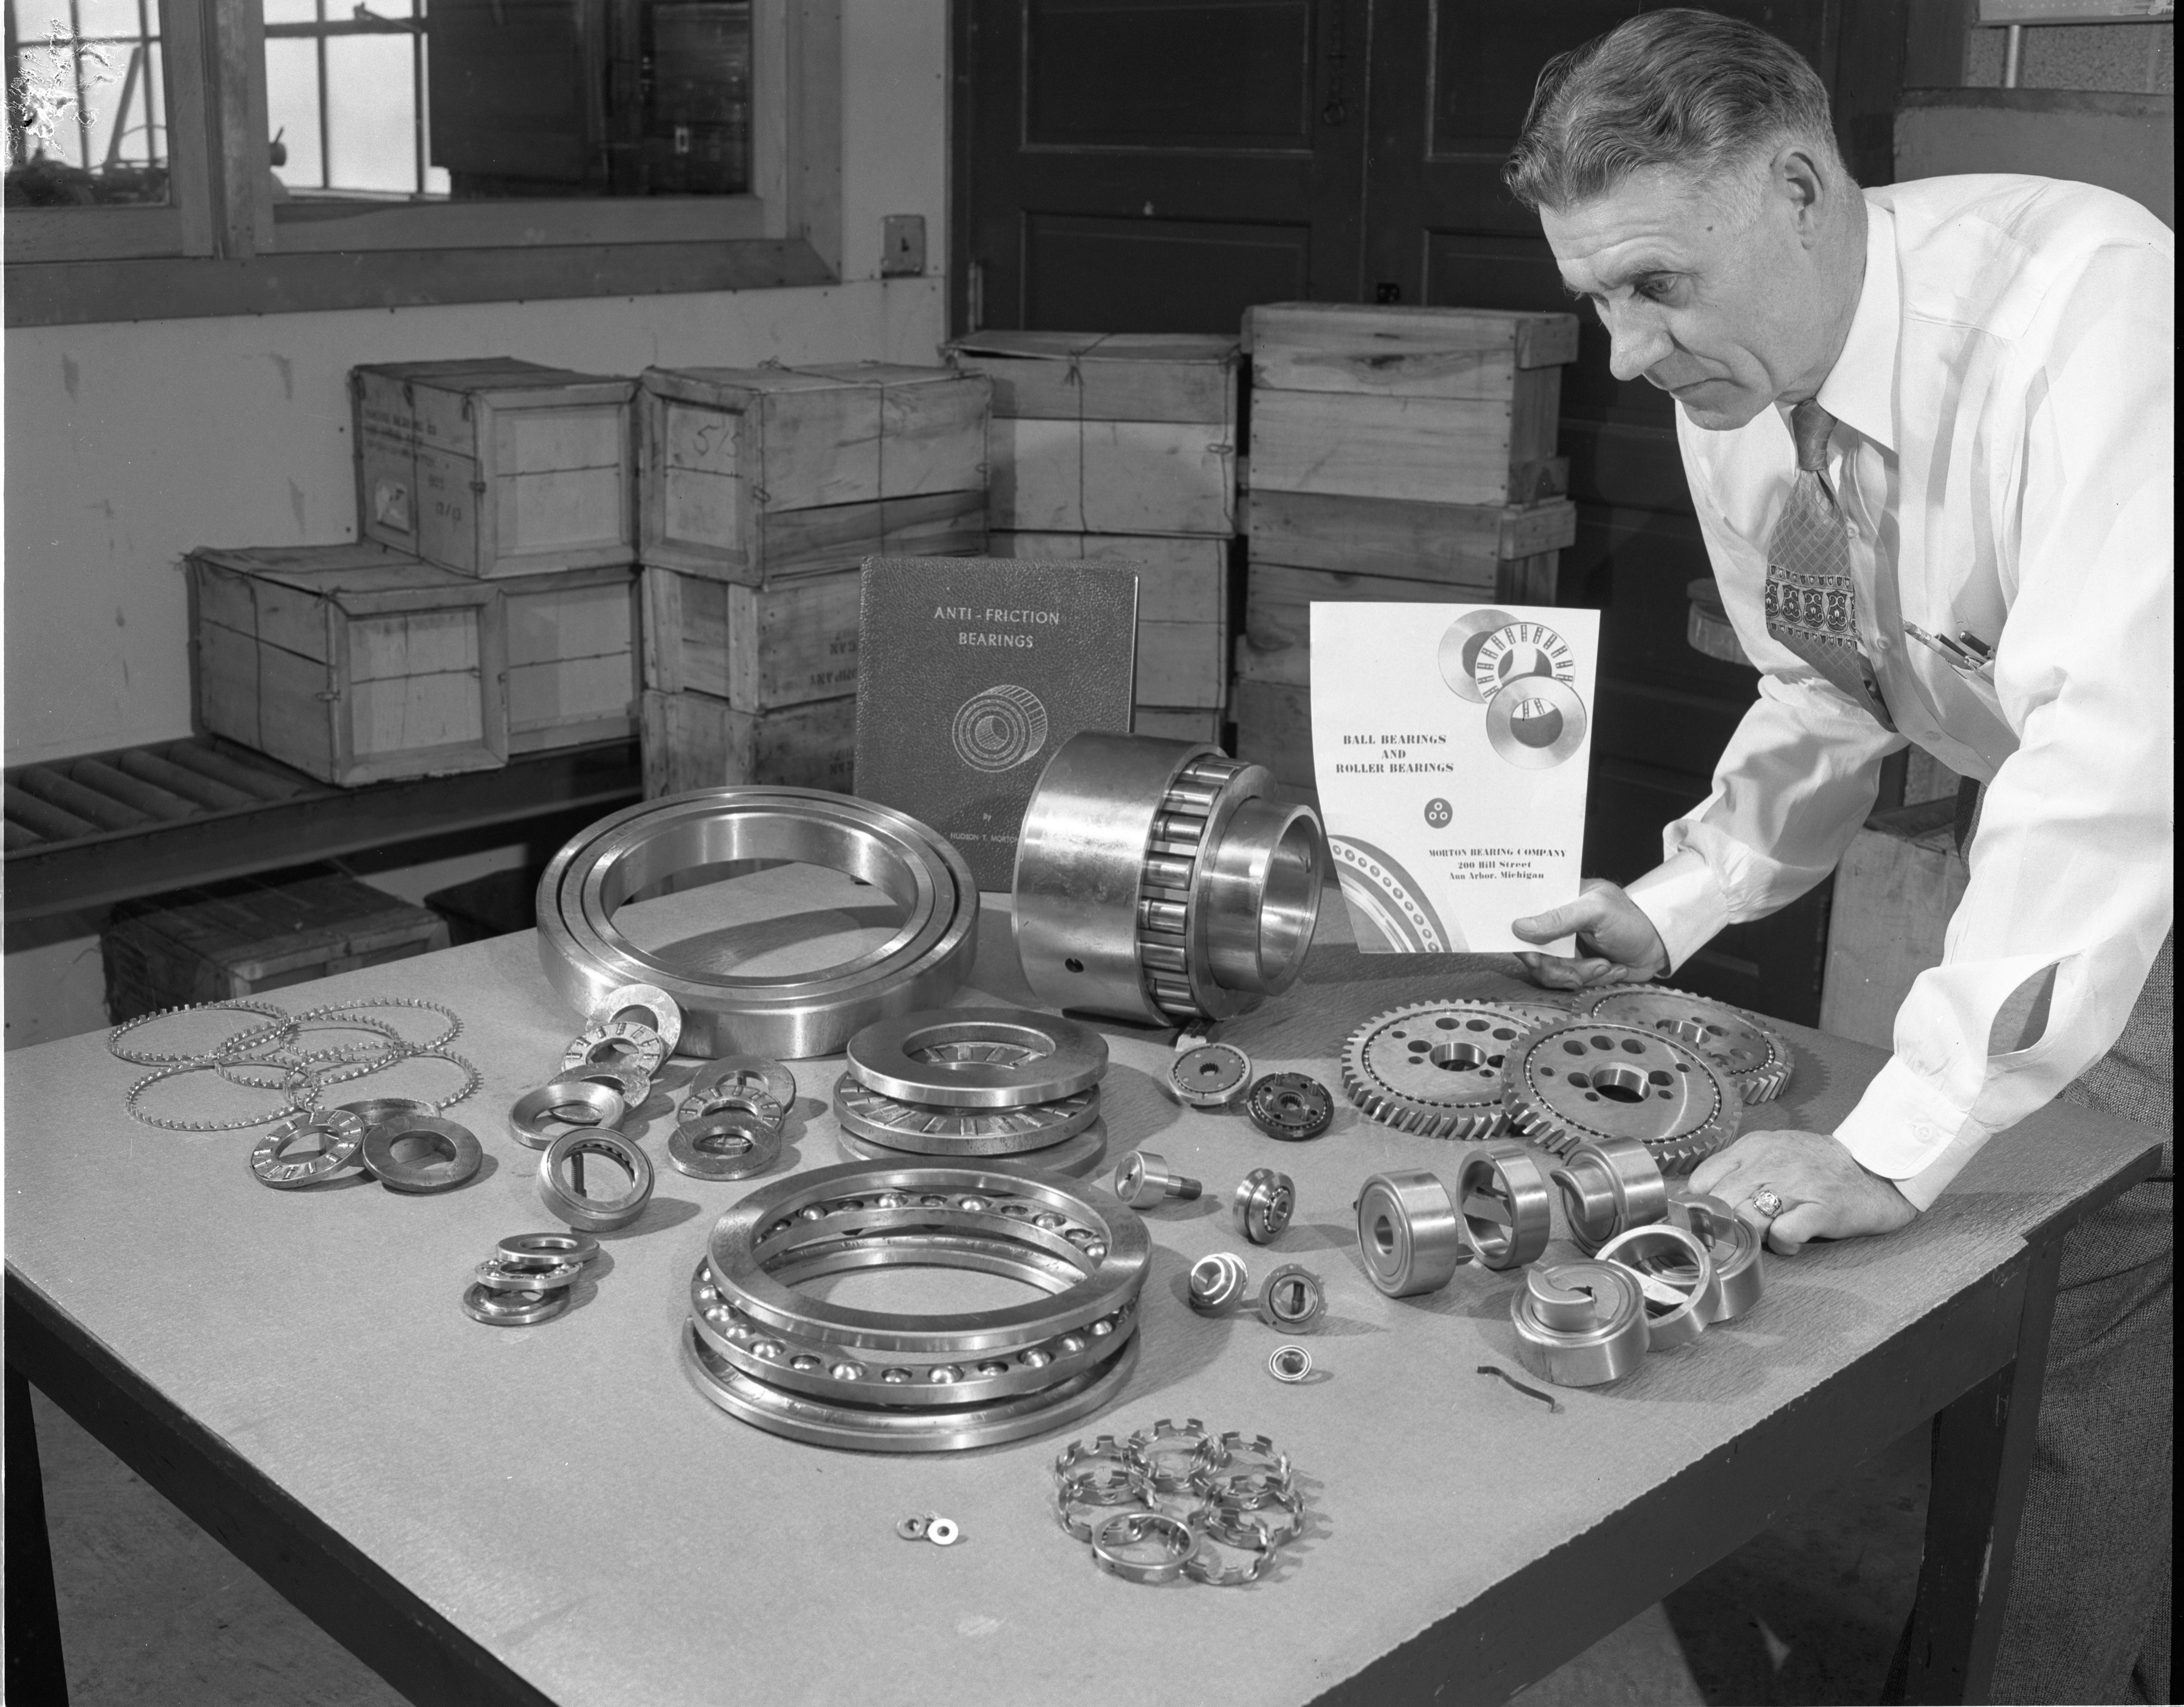 Hudson T. Morton Examines Bearings Manufactured At The Morton Bearing Company, December 1954 image